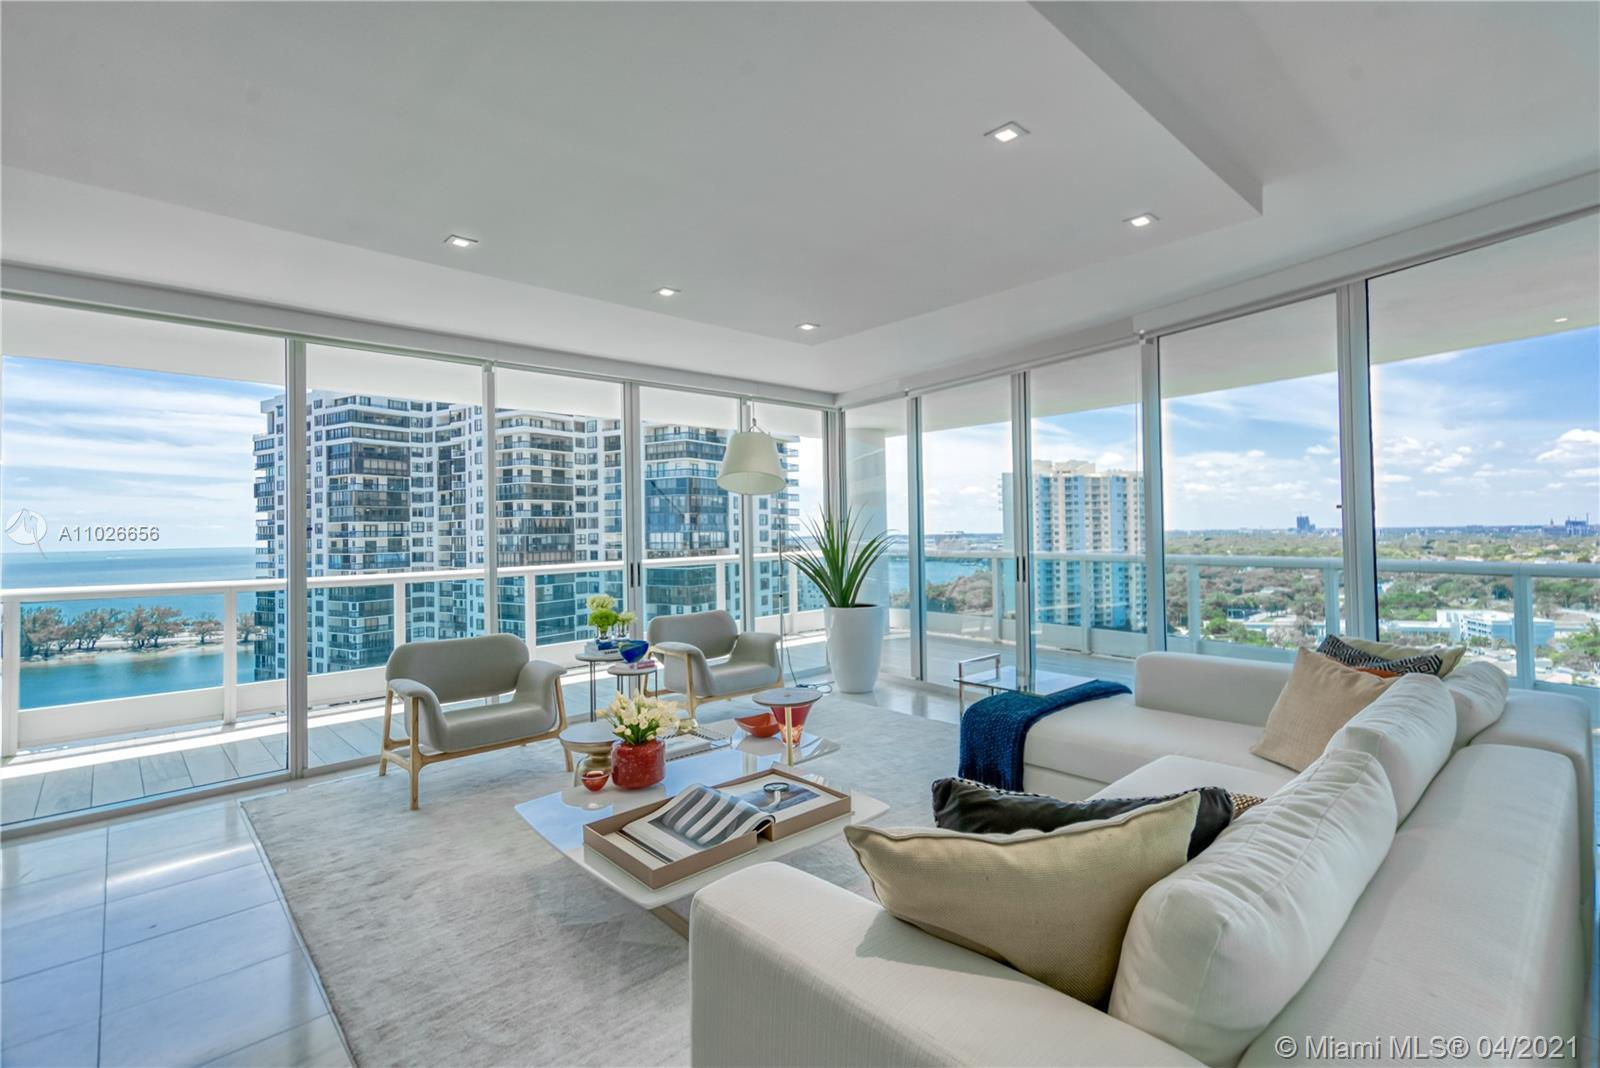 This stunning 3 Be/3Ba unit at prestigious Bristol Tower in Brickell offers 2,310 SF and will be sol